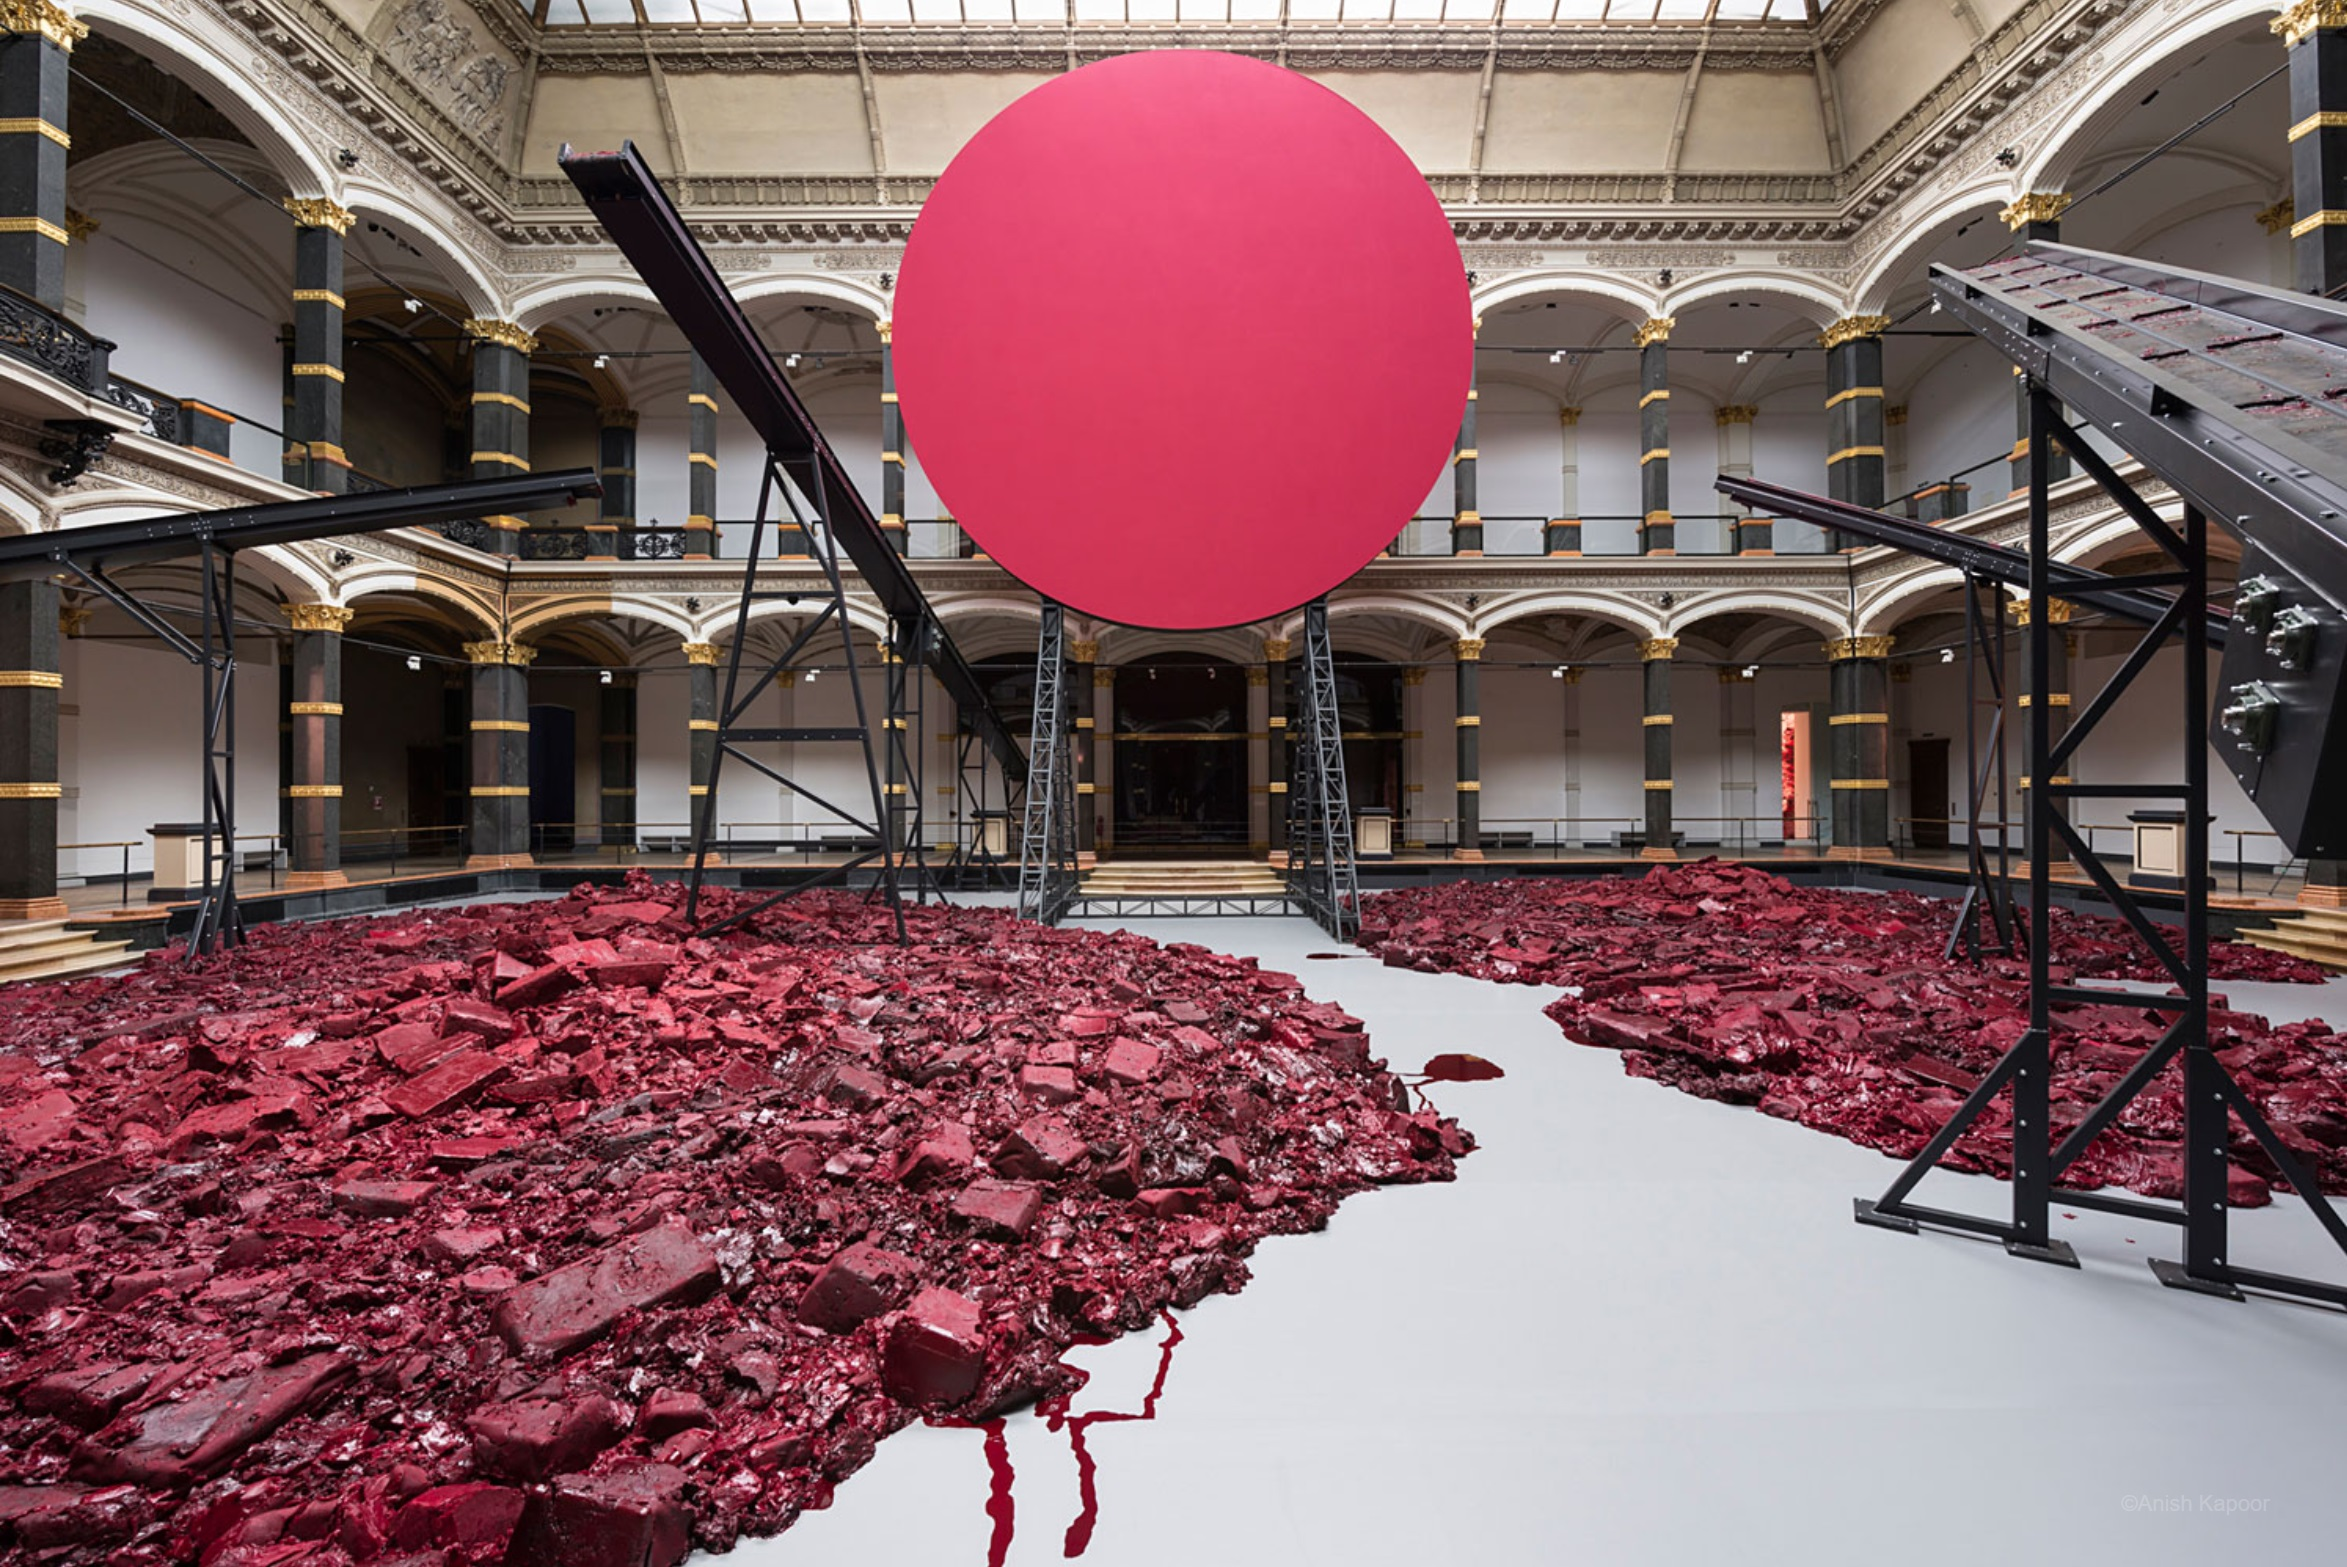 A photo of gallery space with red rubble on the ground, a suspended red sphere, and black iron bars bisecting the space.